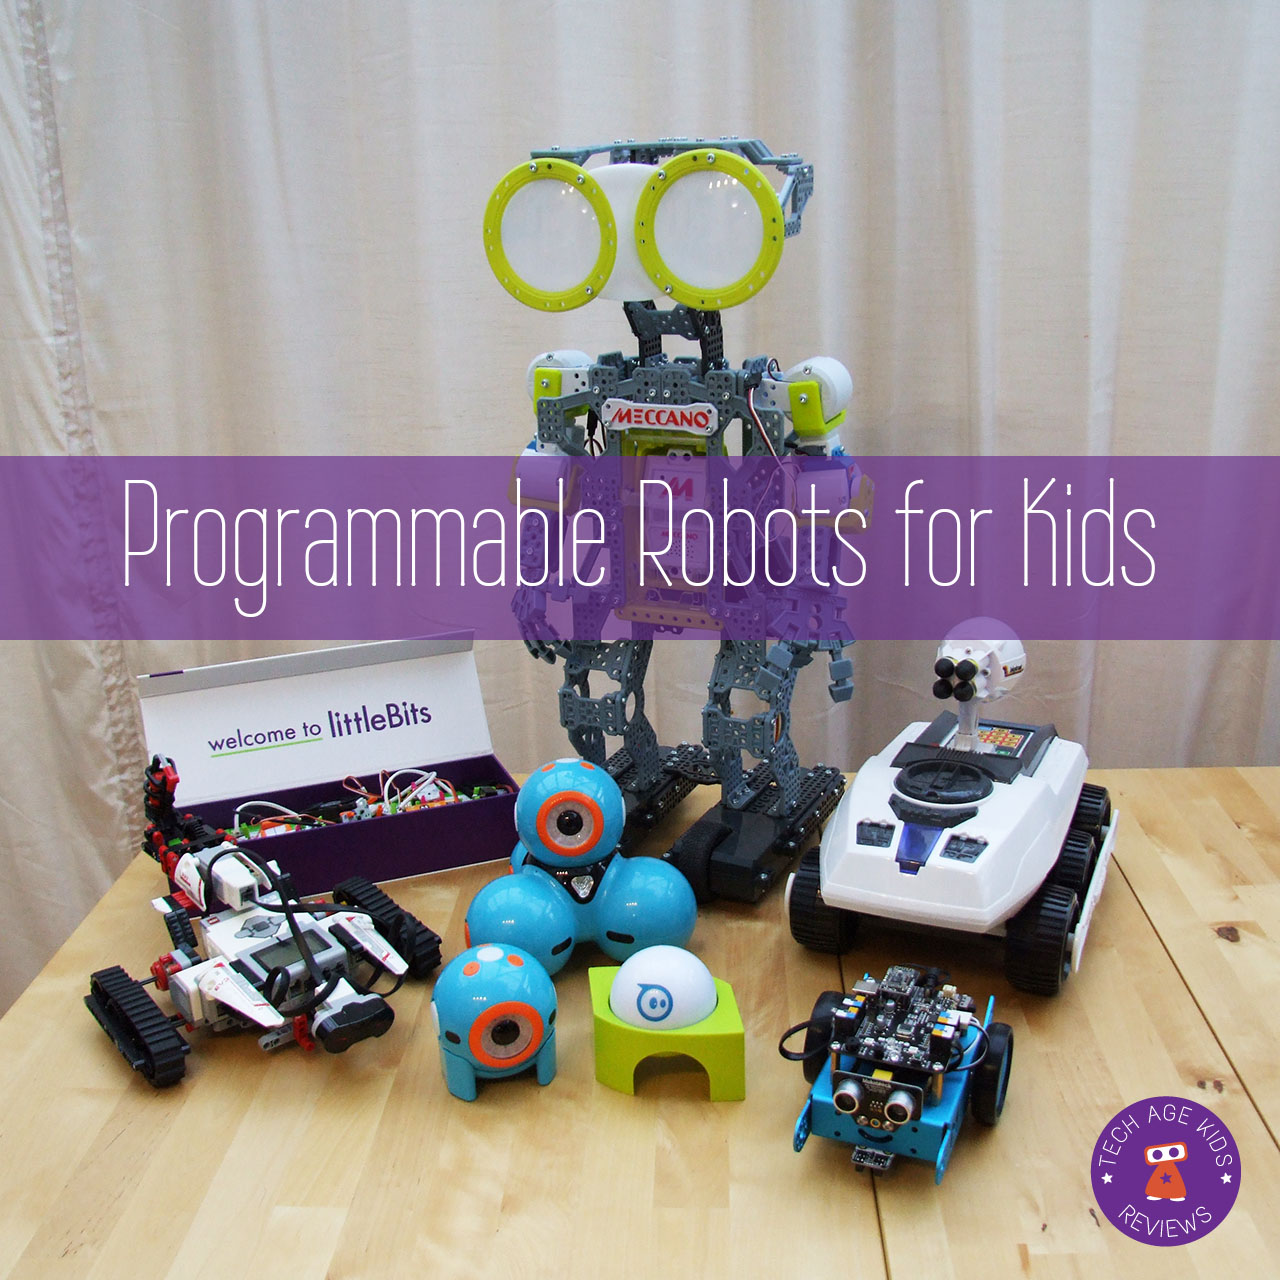 Programmable Robots for Kids Buying Guide